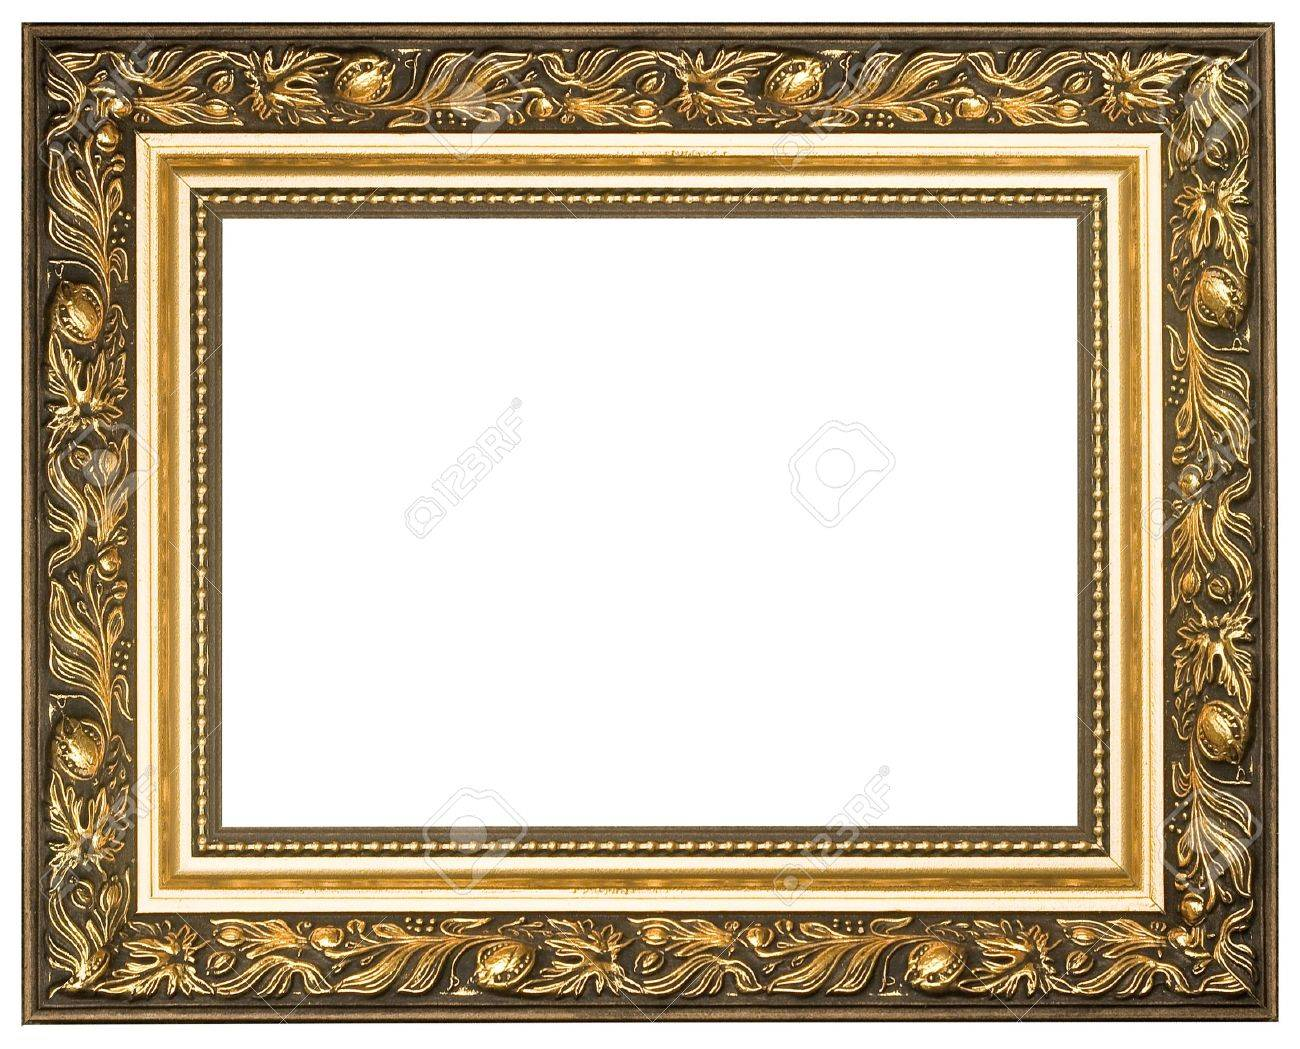 Picture gold frame with a decorative pattern Stock Photo - 9695145